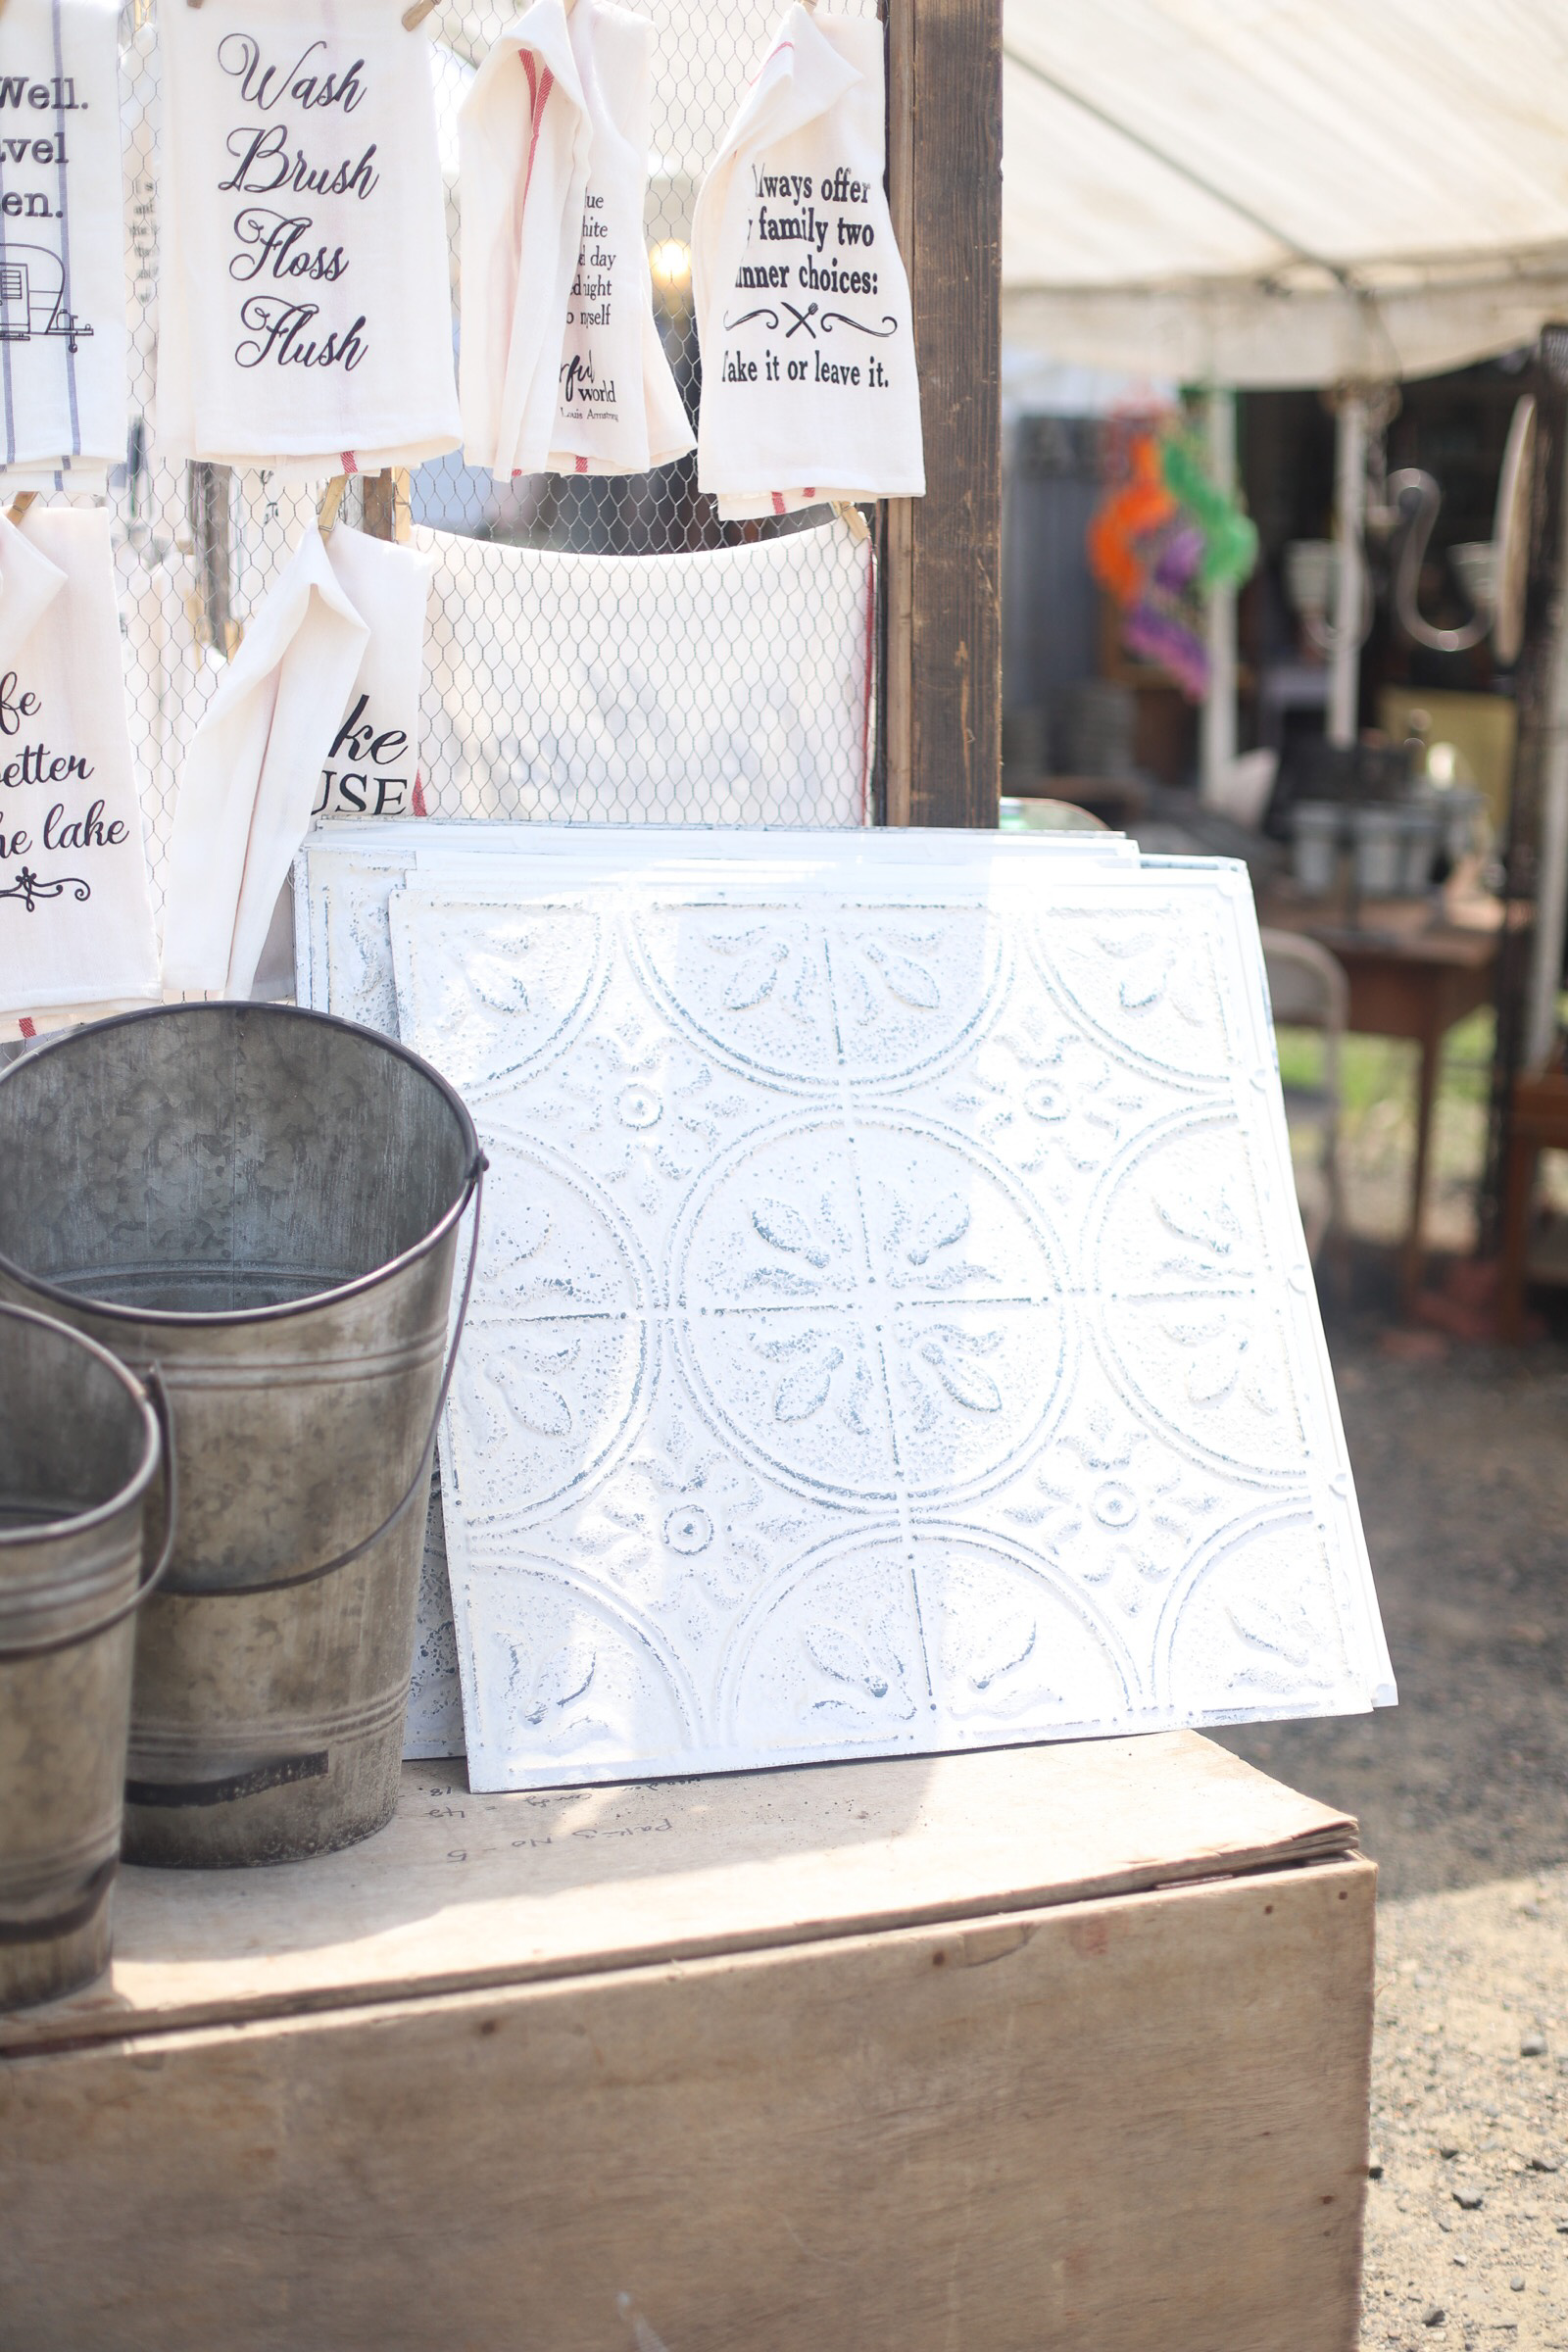 A guide to the Brimfield Antique Show and Flea Market- the largest of its kind in the country - and how to score the best vintage and thrift finds there! | glitterinc.com